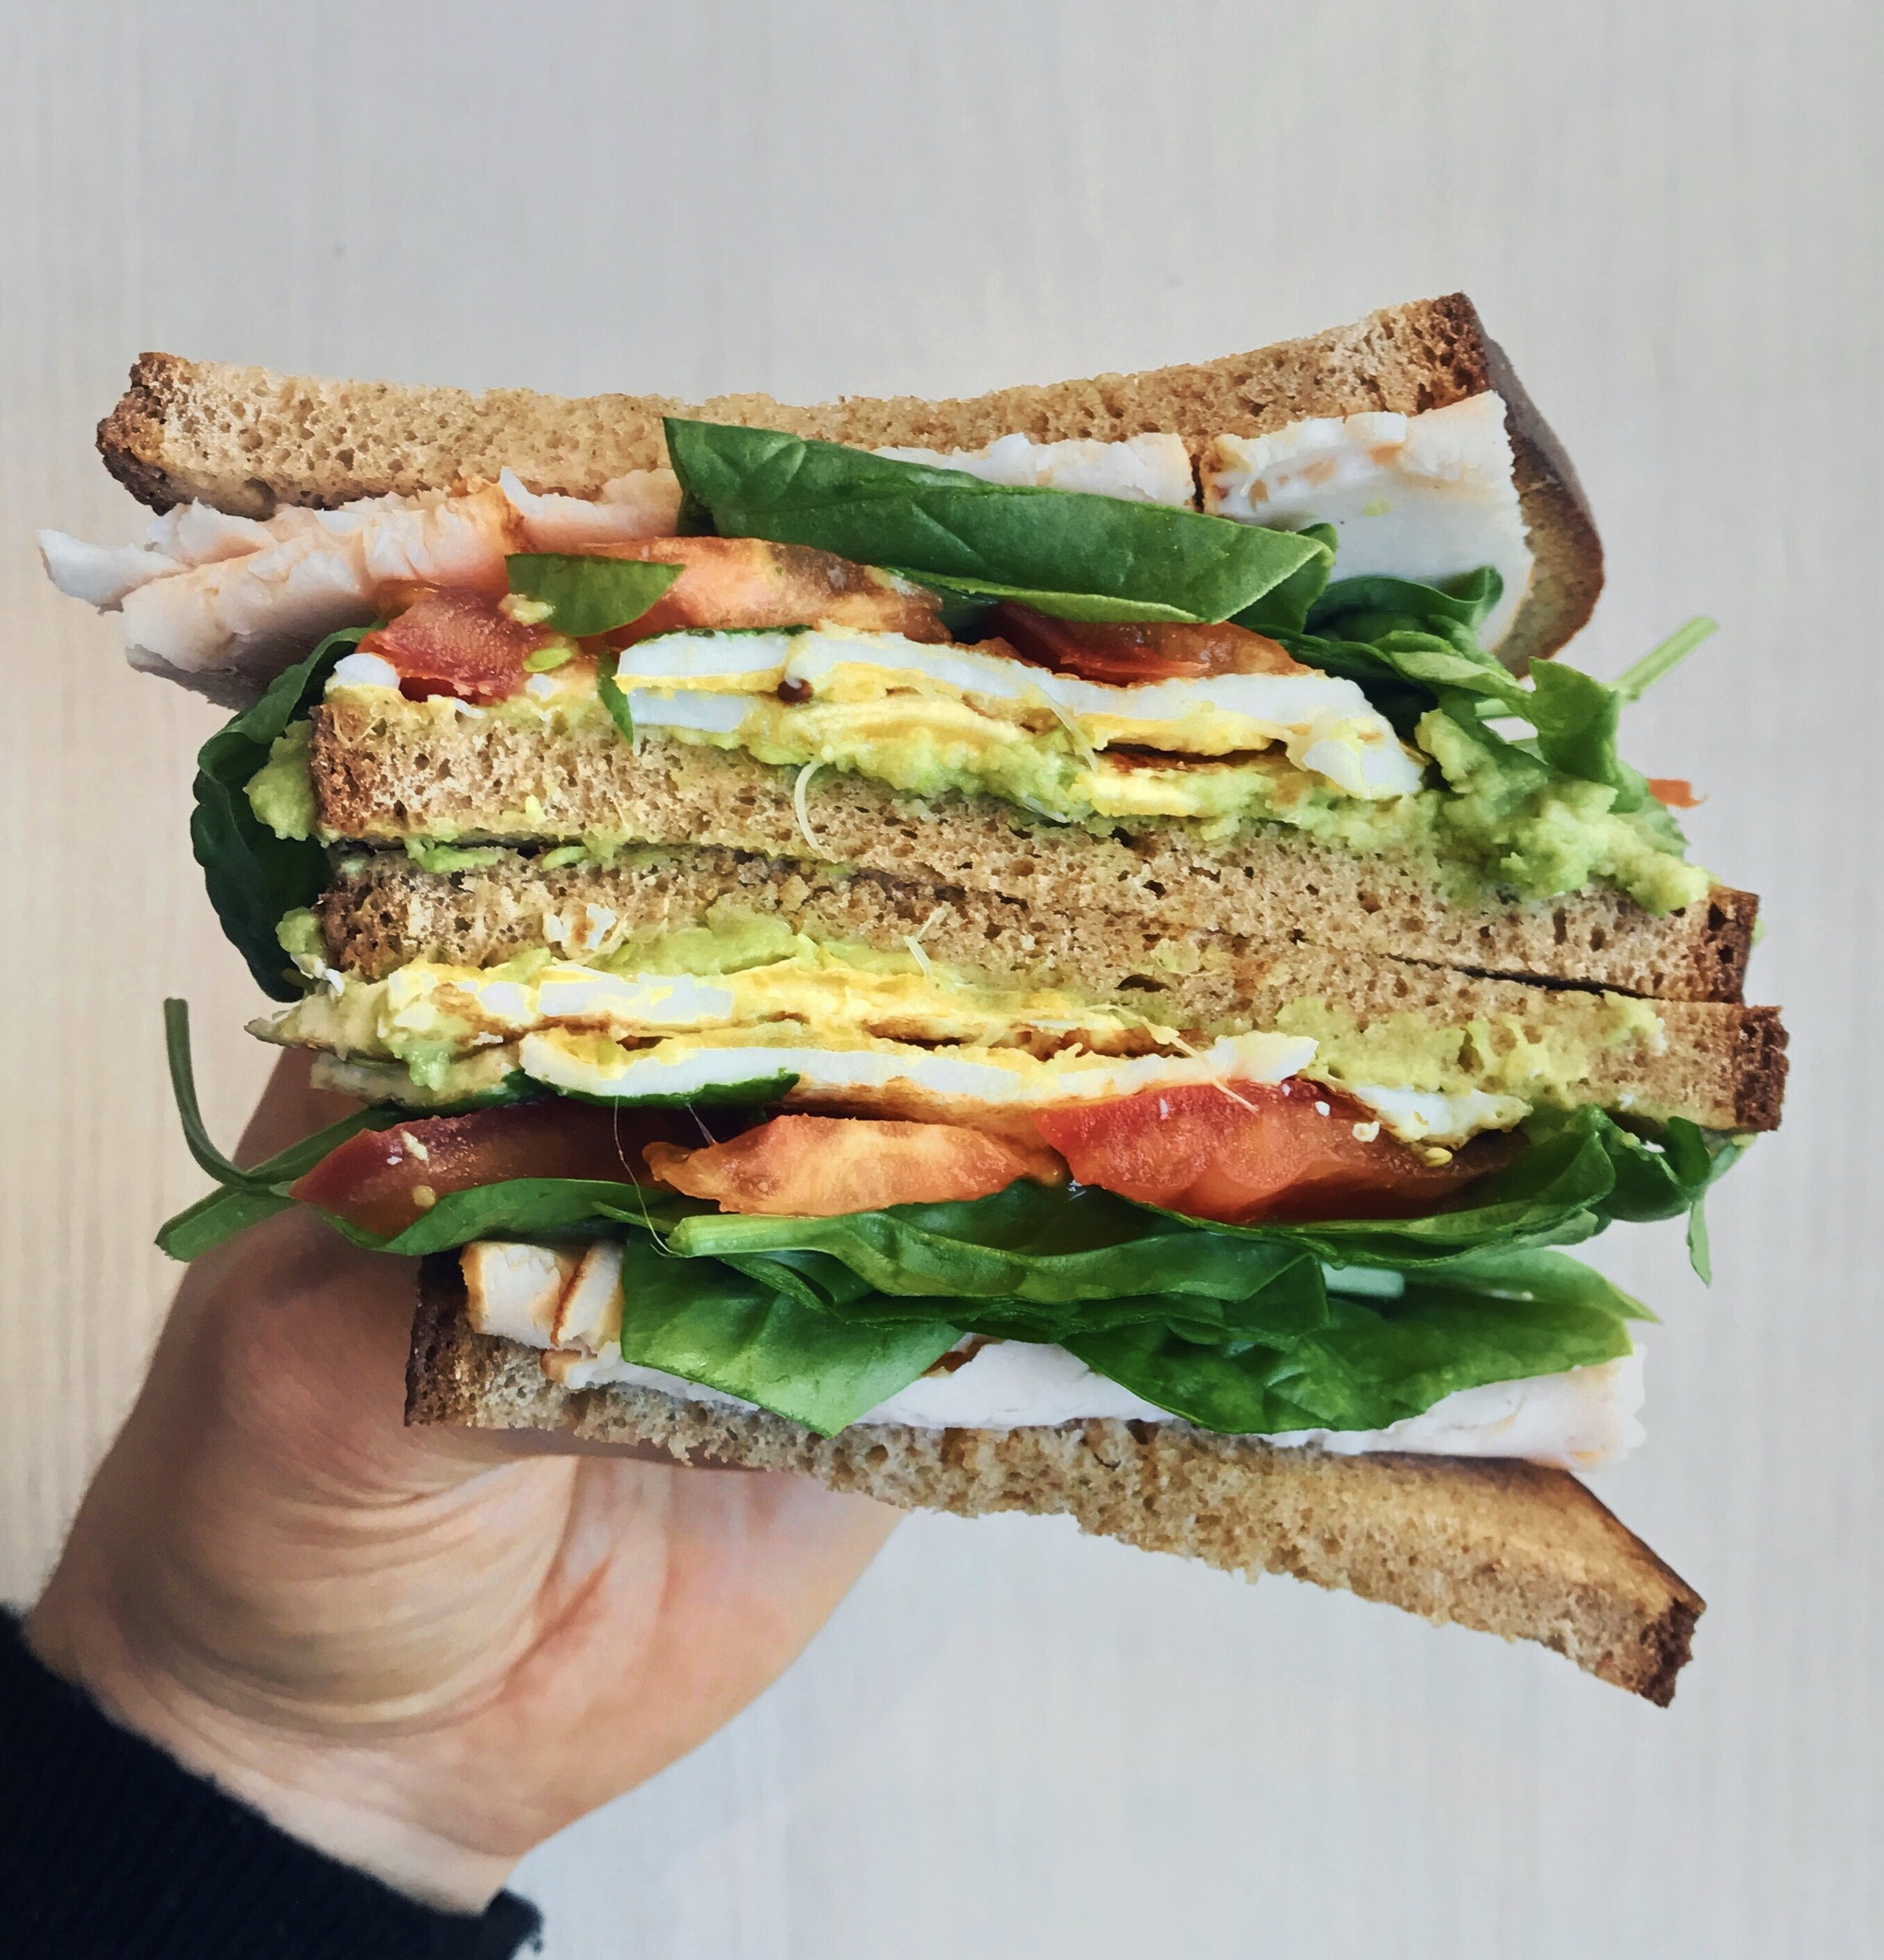 Breakfast & Brunch Sandwich - Toasted rye bread bought with @leshabituesfilled with @naturalia_magasins_biomashed avocado + a fried egg + tomato slices +@florette_francespinach leaves + chicken +@alain_milliatherbs